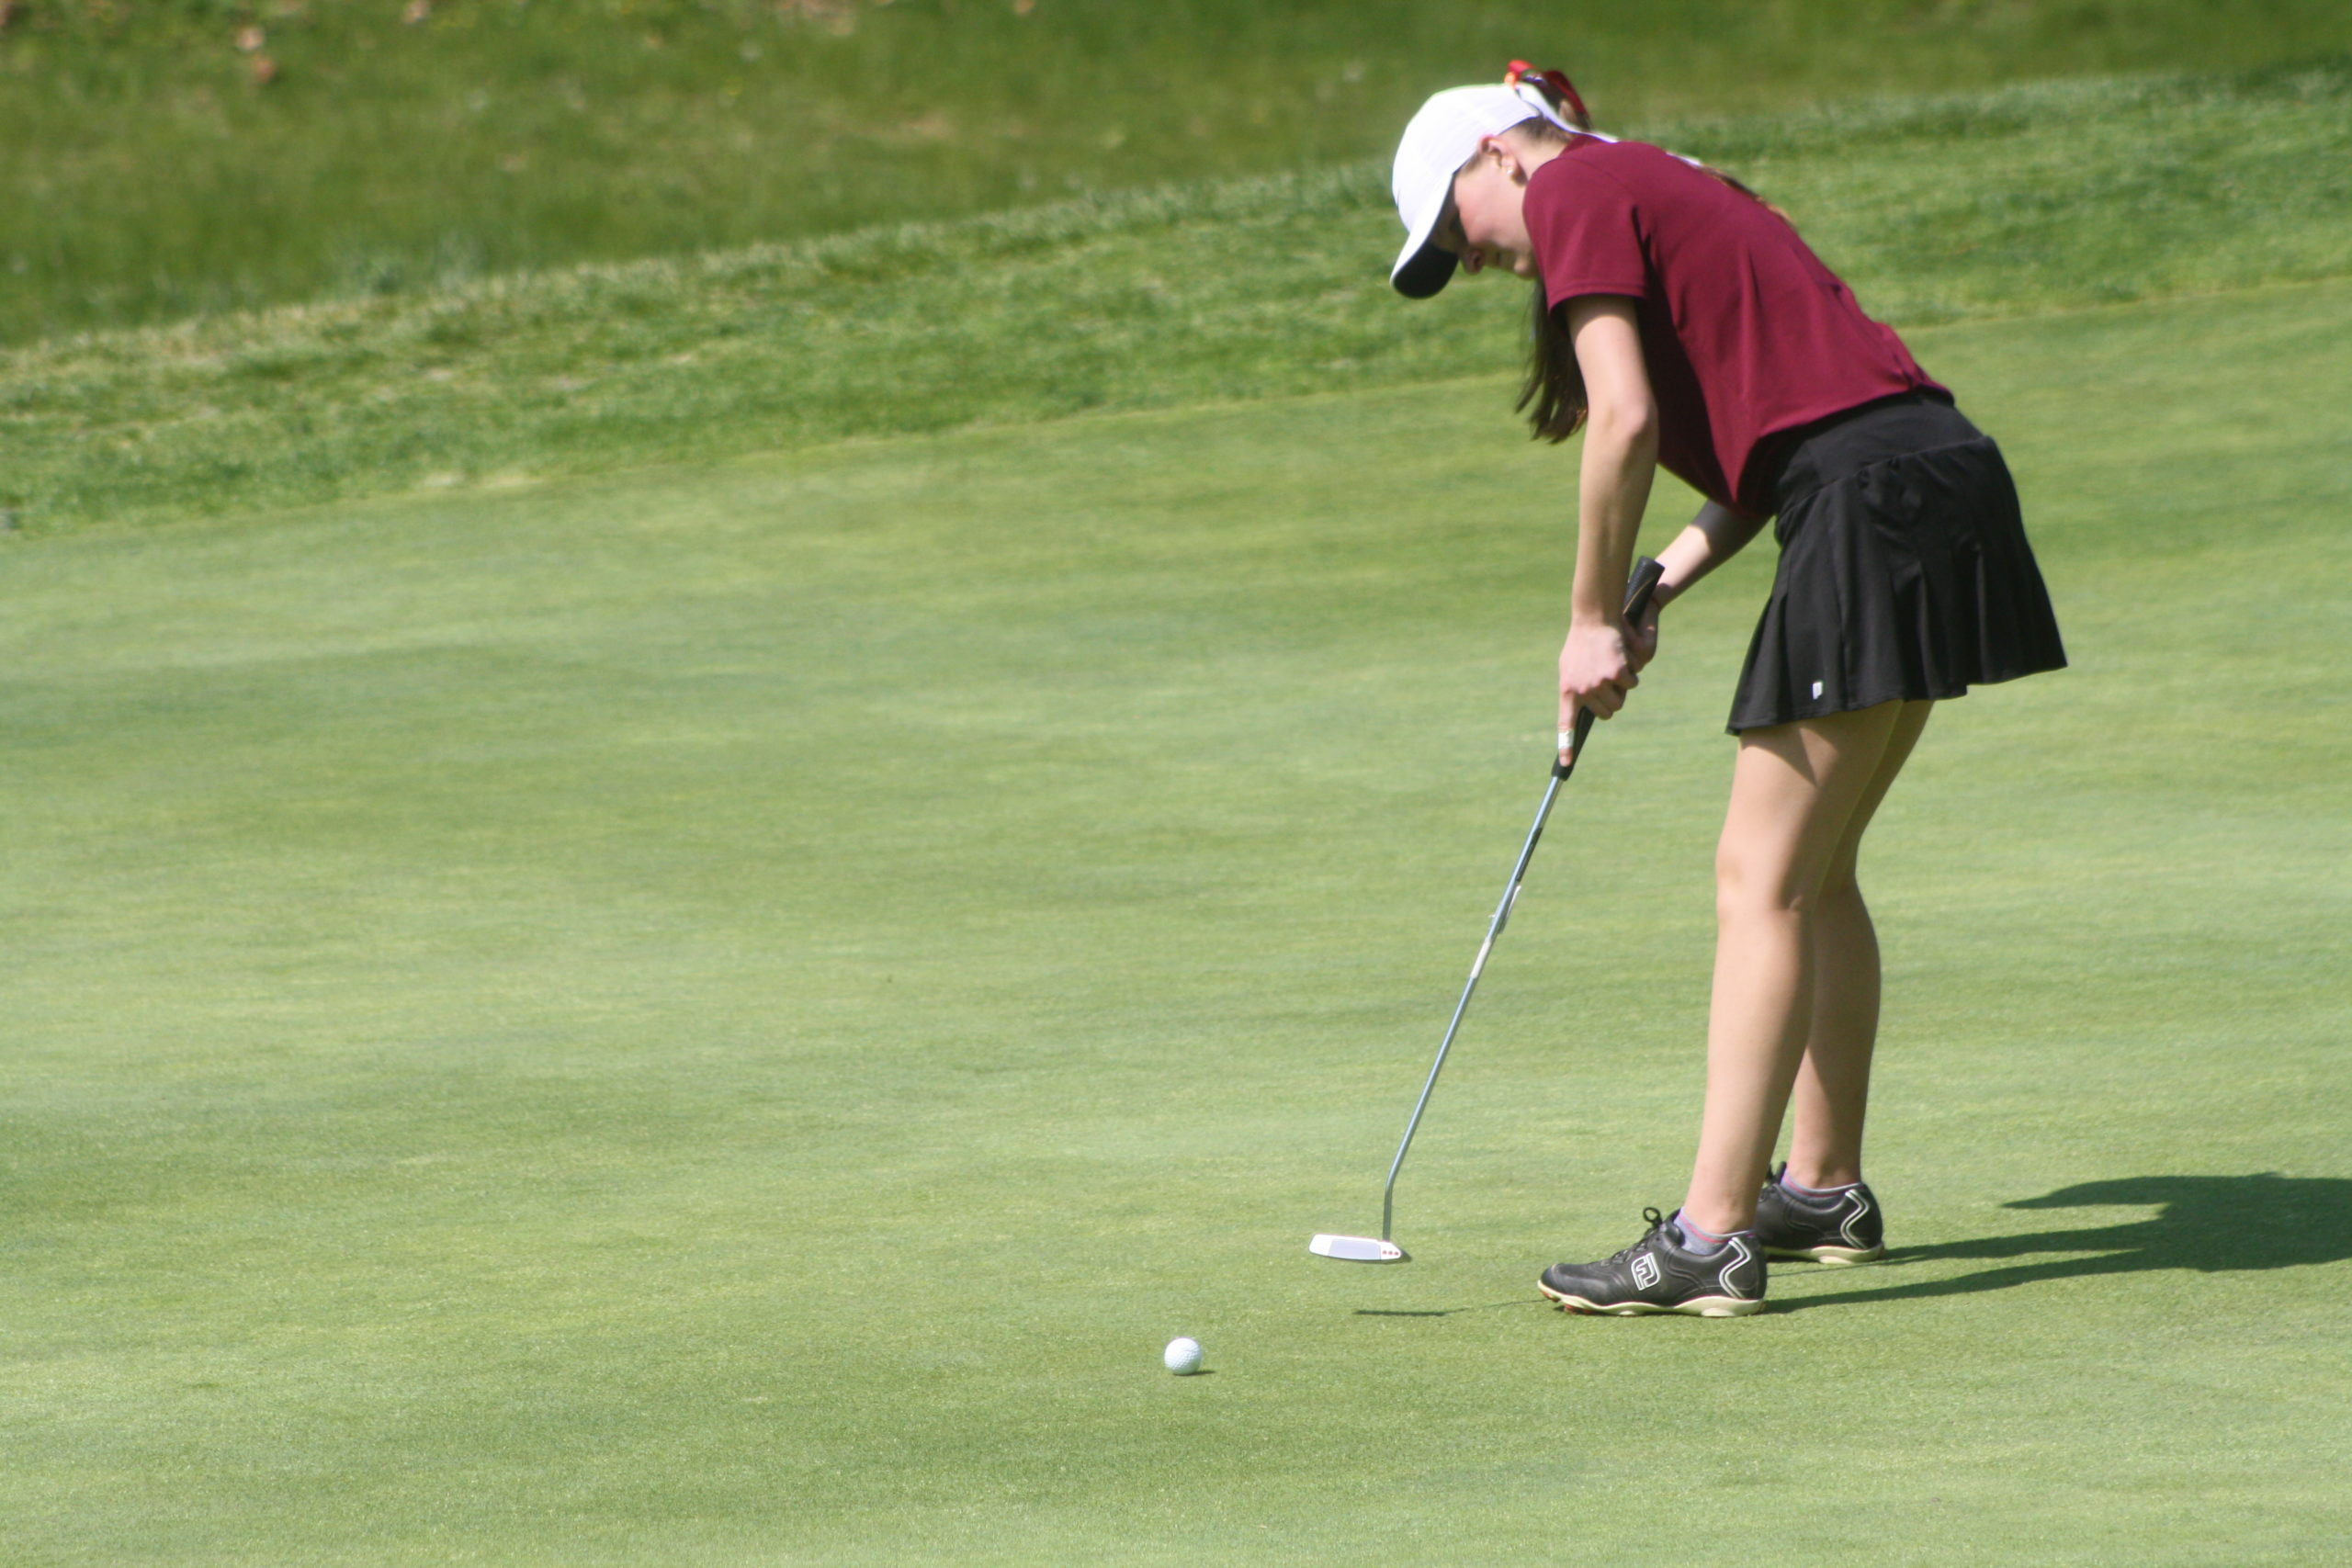 Caraline Oakley at last year's Suffolk County Girls Golf Championships.